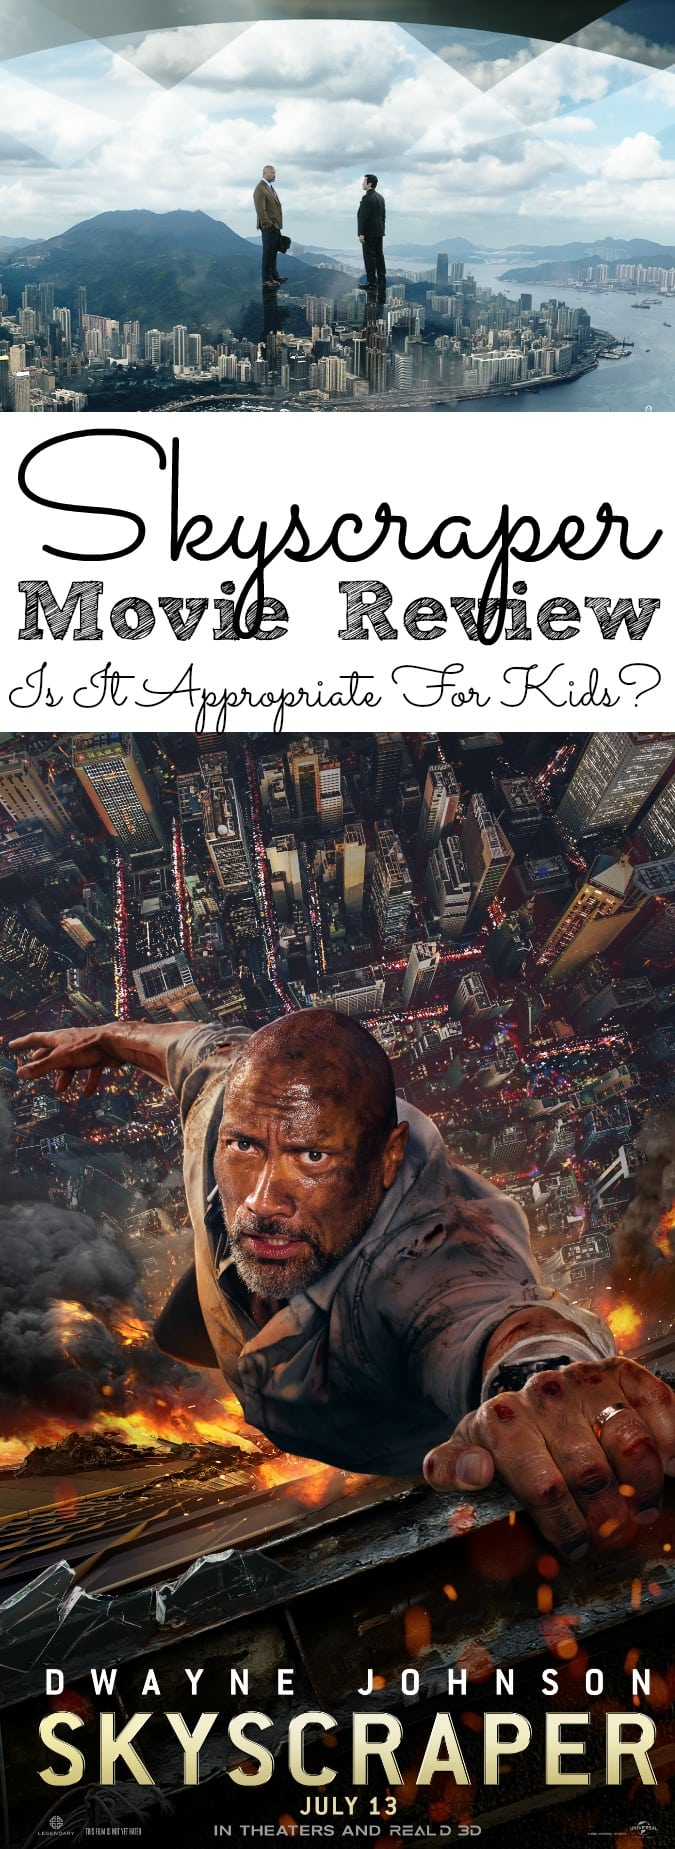 Skyscraper Movie Review | Is It Appropriate For Kids